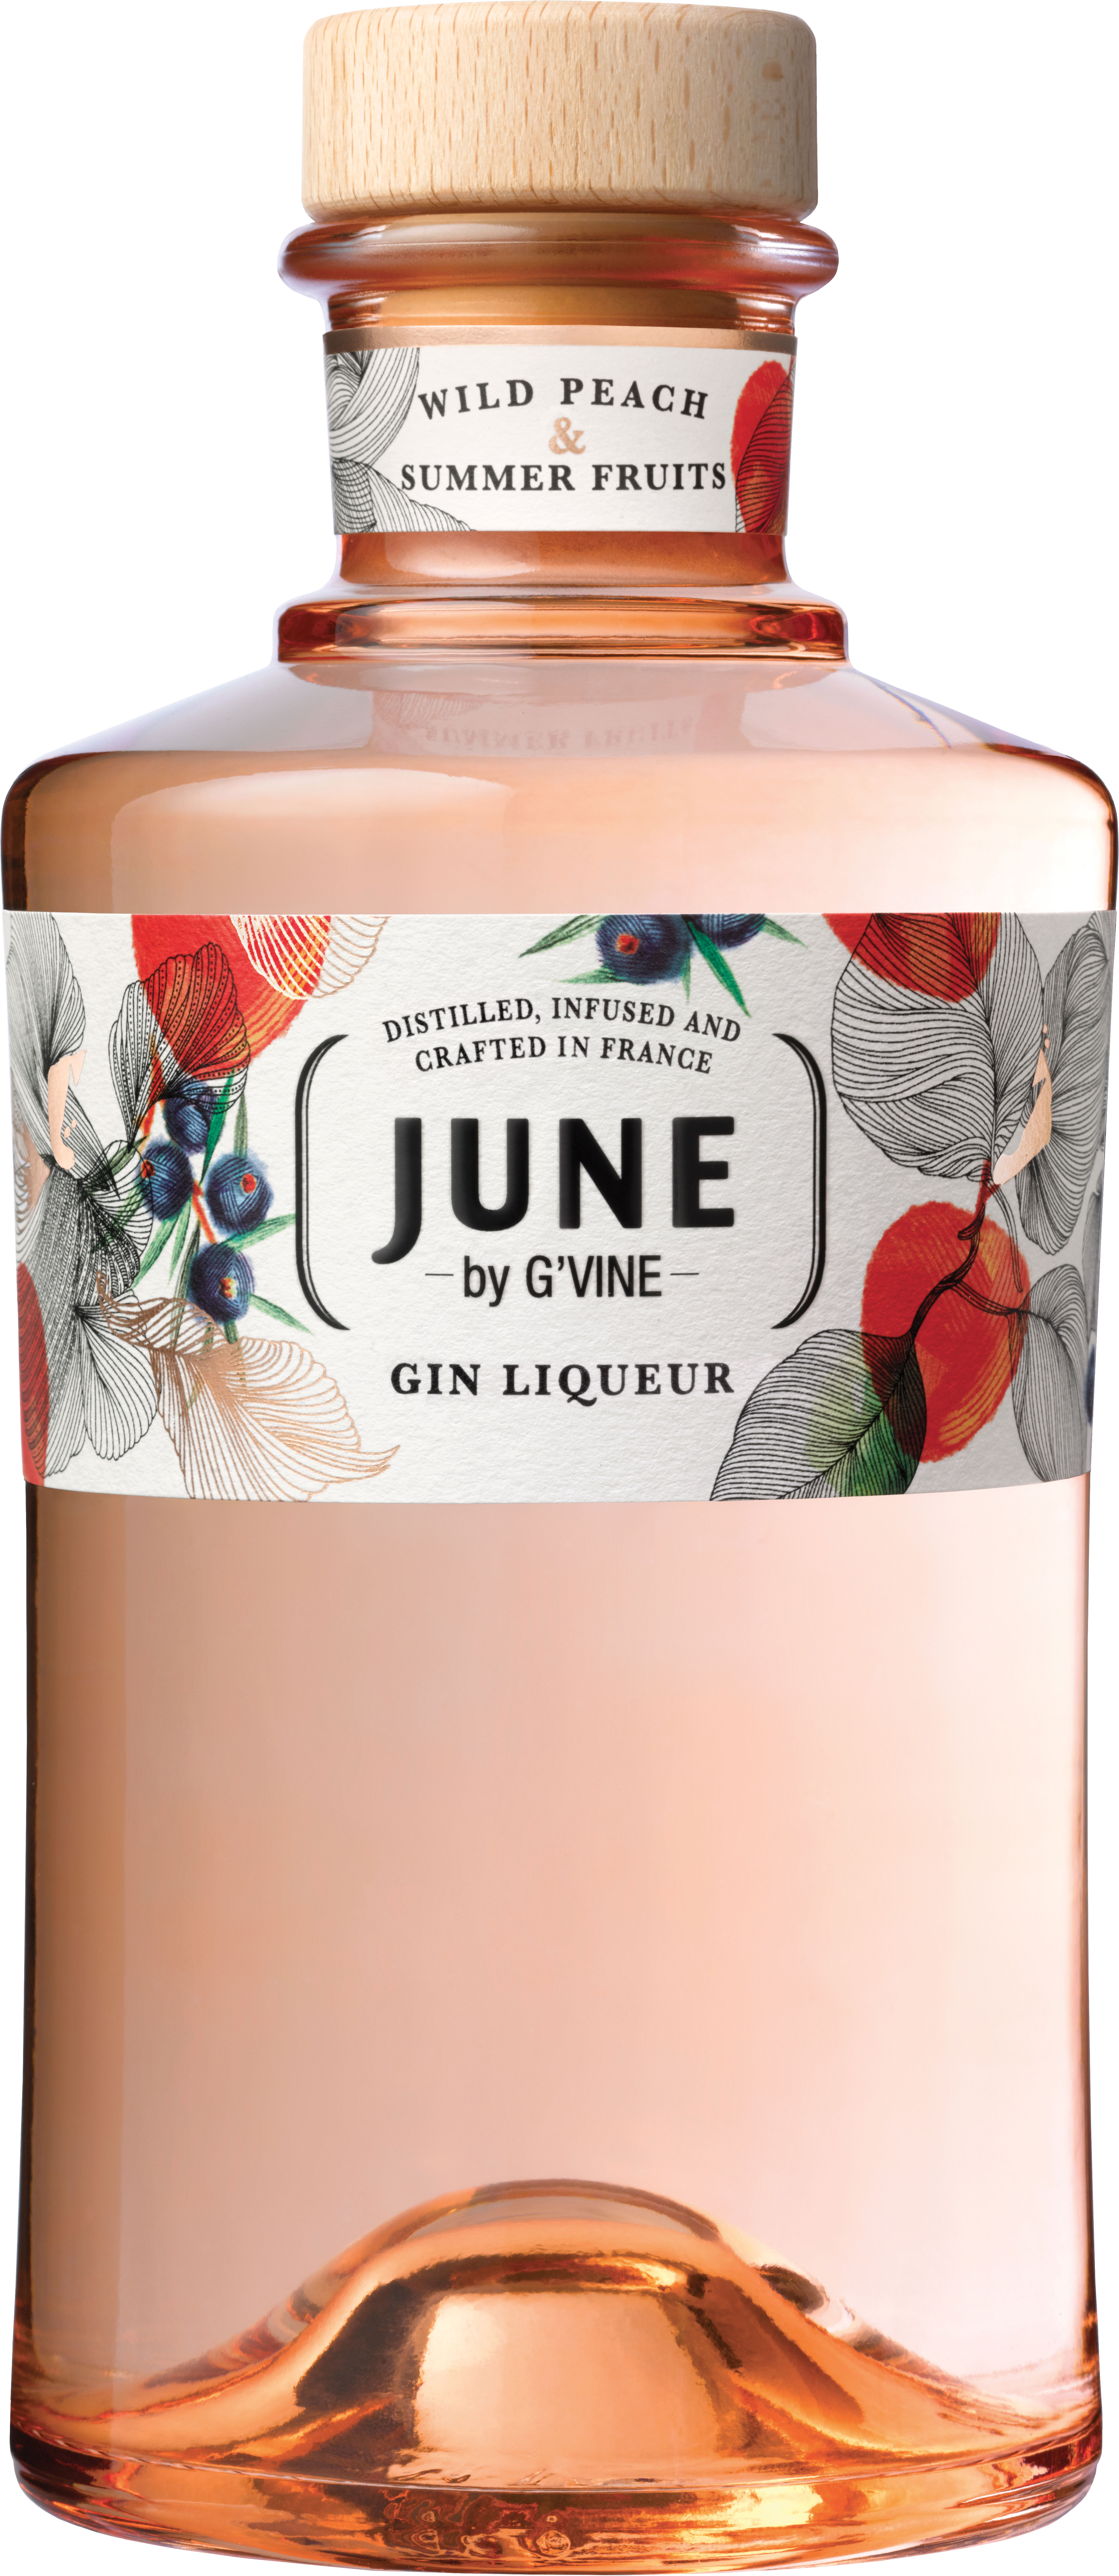 G'Vine - June Gin Liqueur 70cl Bottle